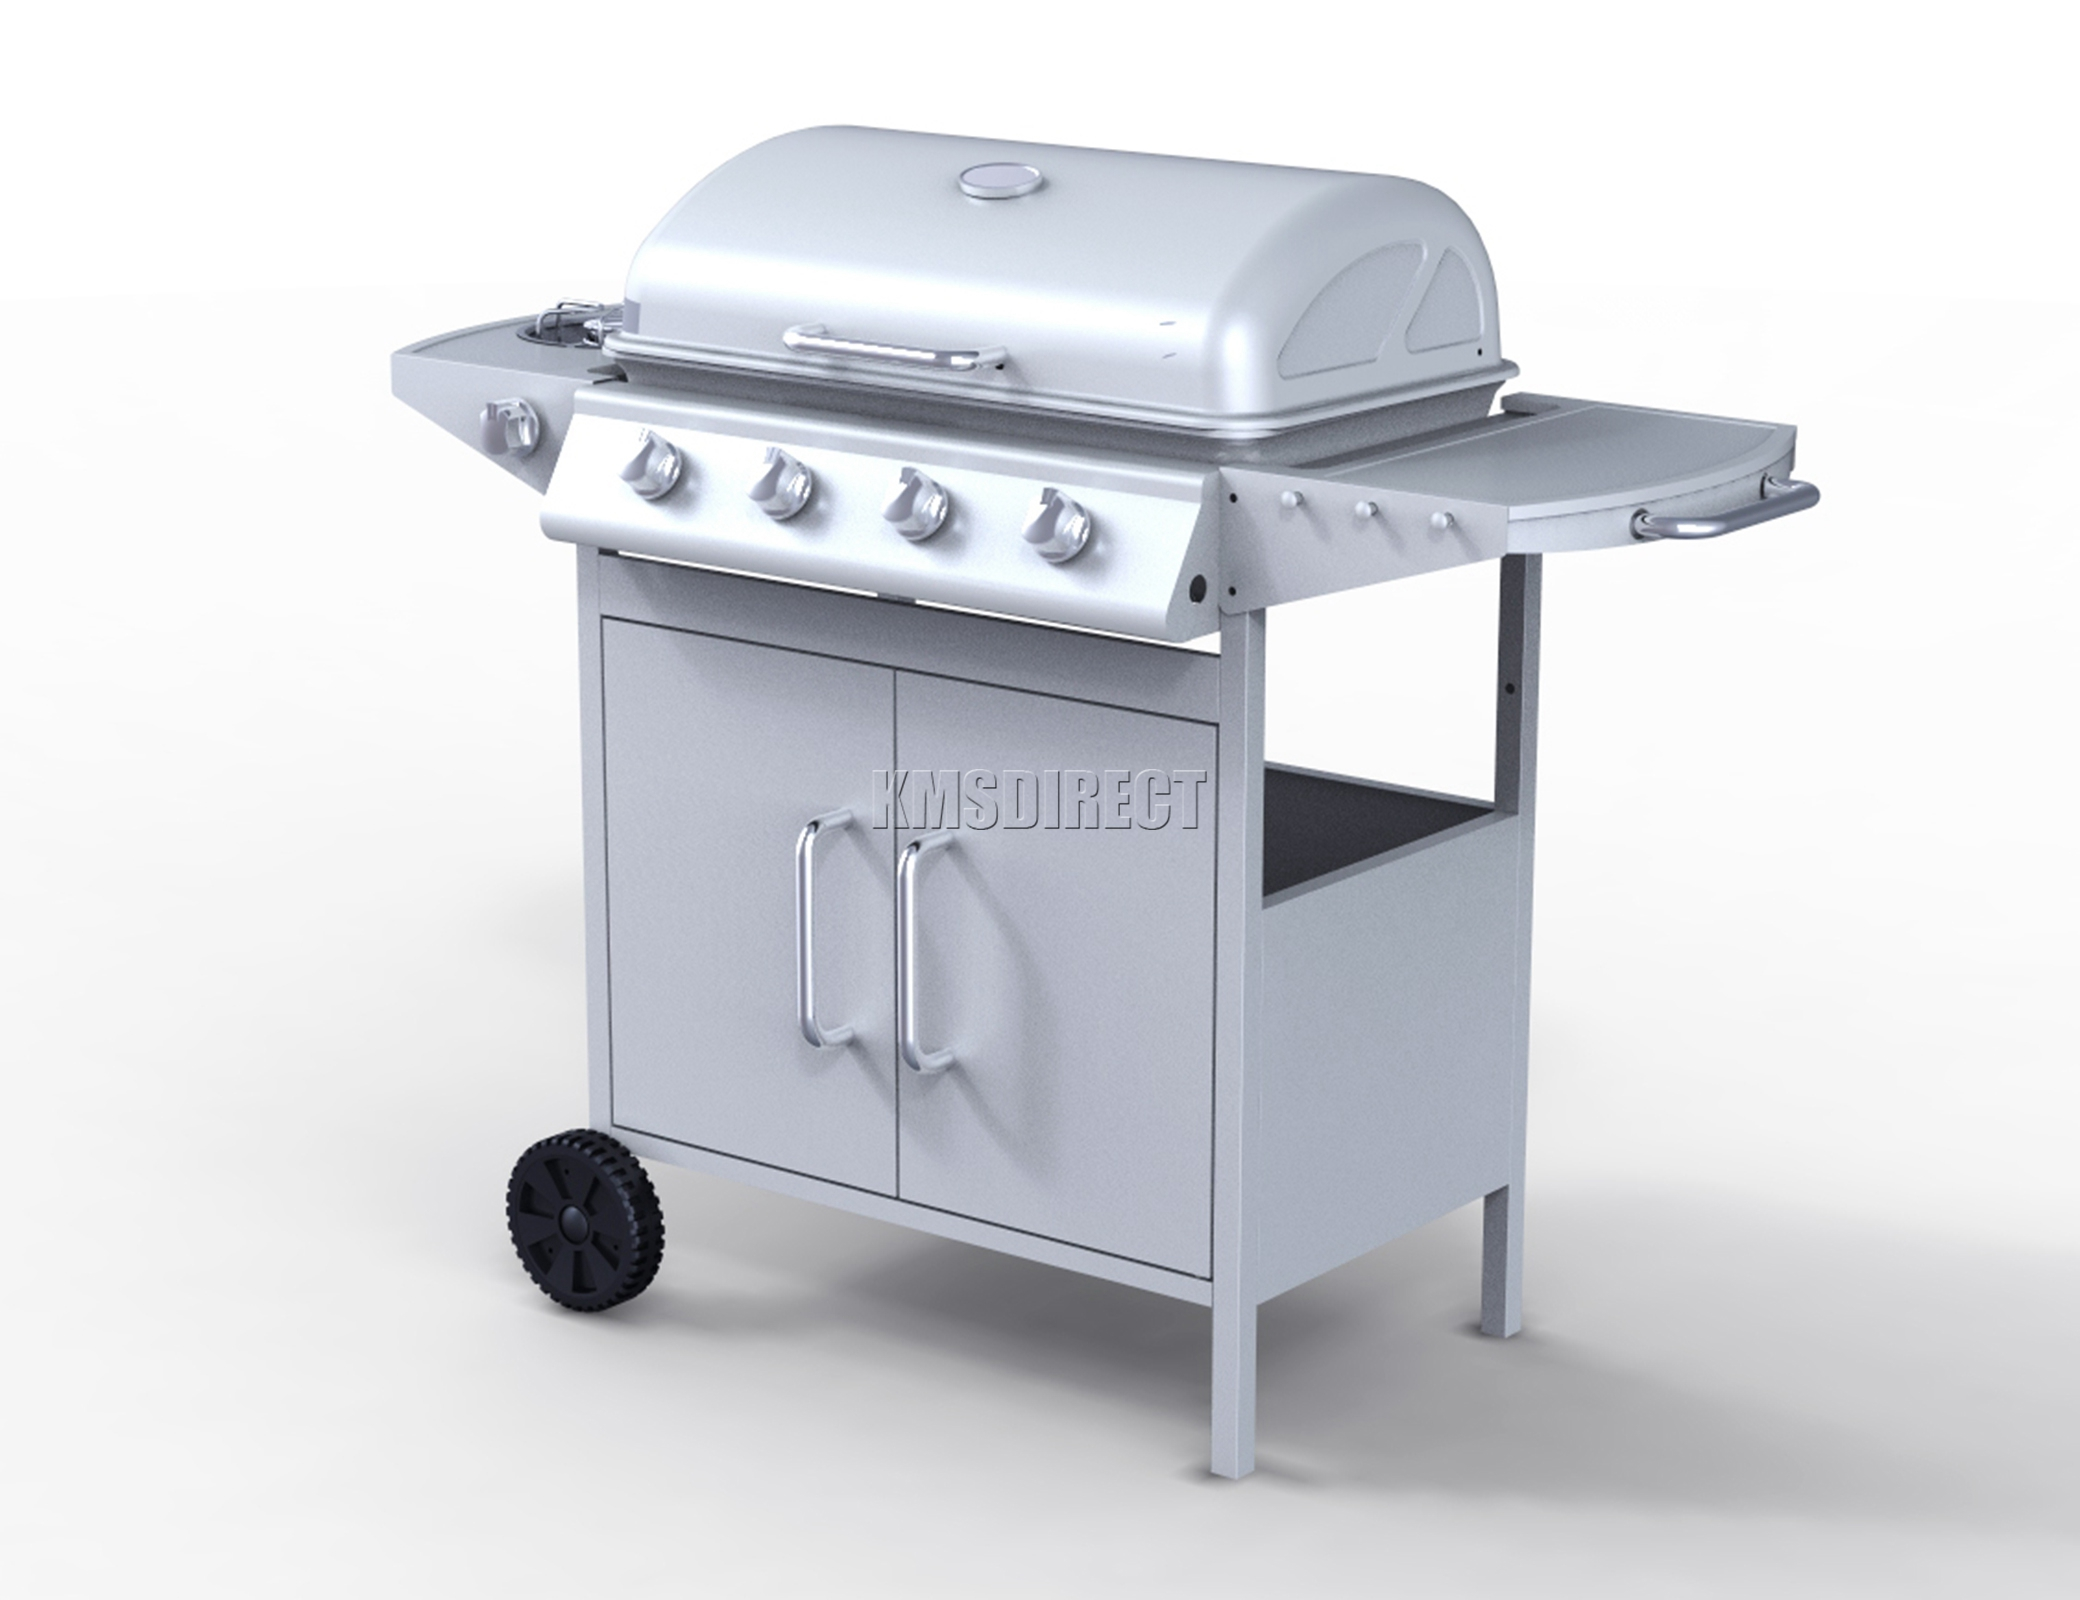 foxhunter g2087d 4 burner bbq gas grill silver steel barbecue 1 side outdoor ebay. Black Bedroom Furniture Sets. Home Design Ideas